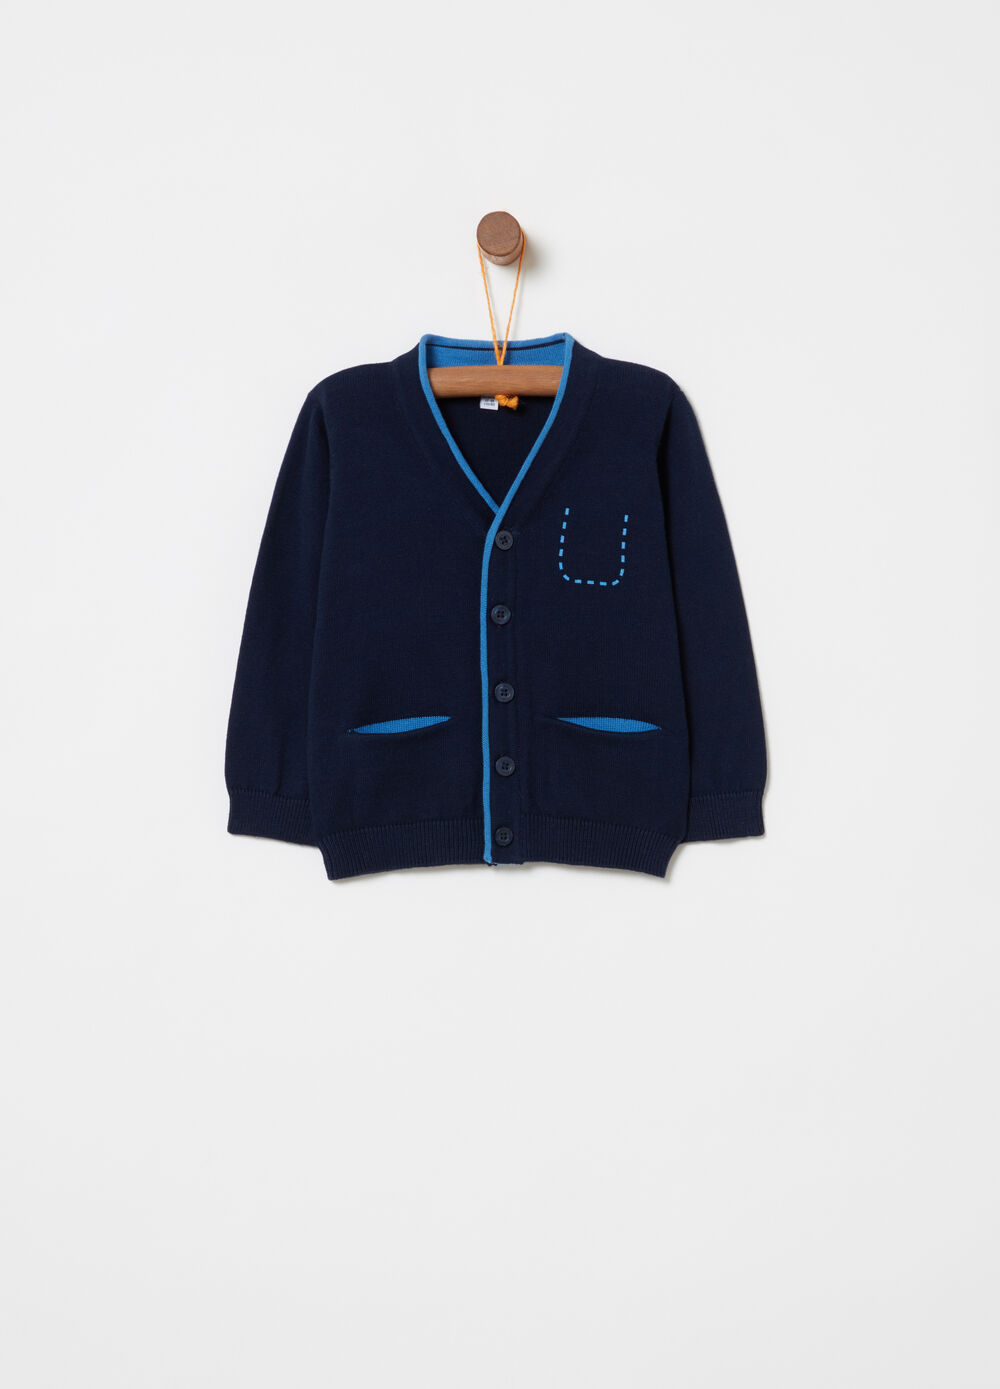 Cardigan with V neck and welt pockets